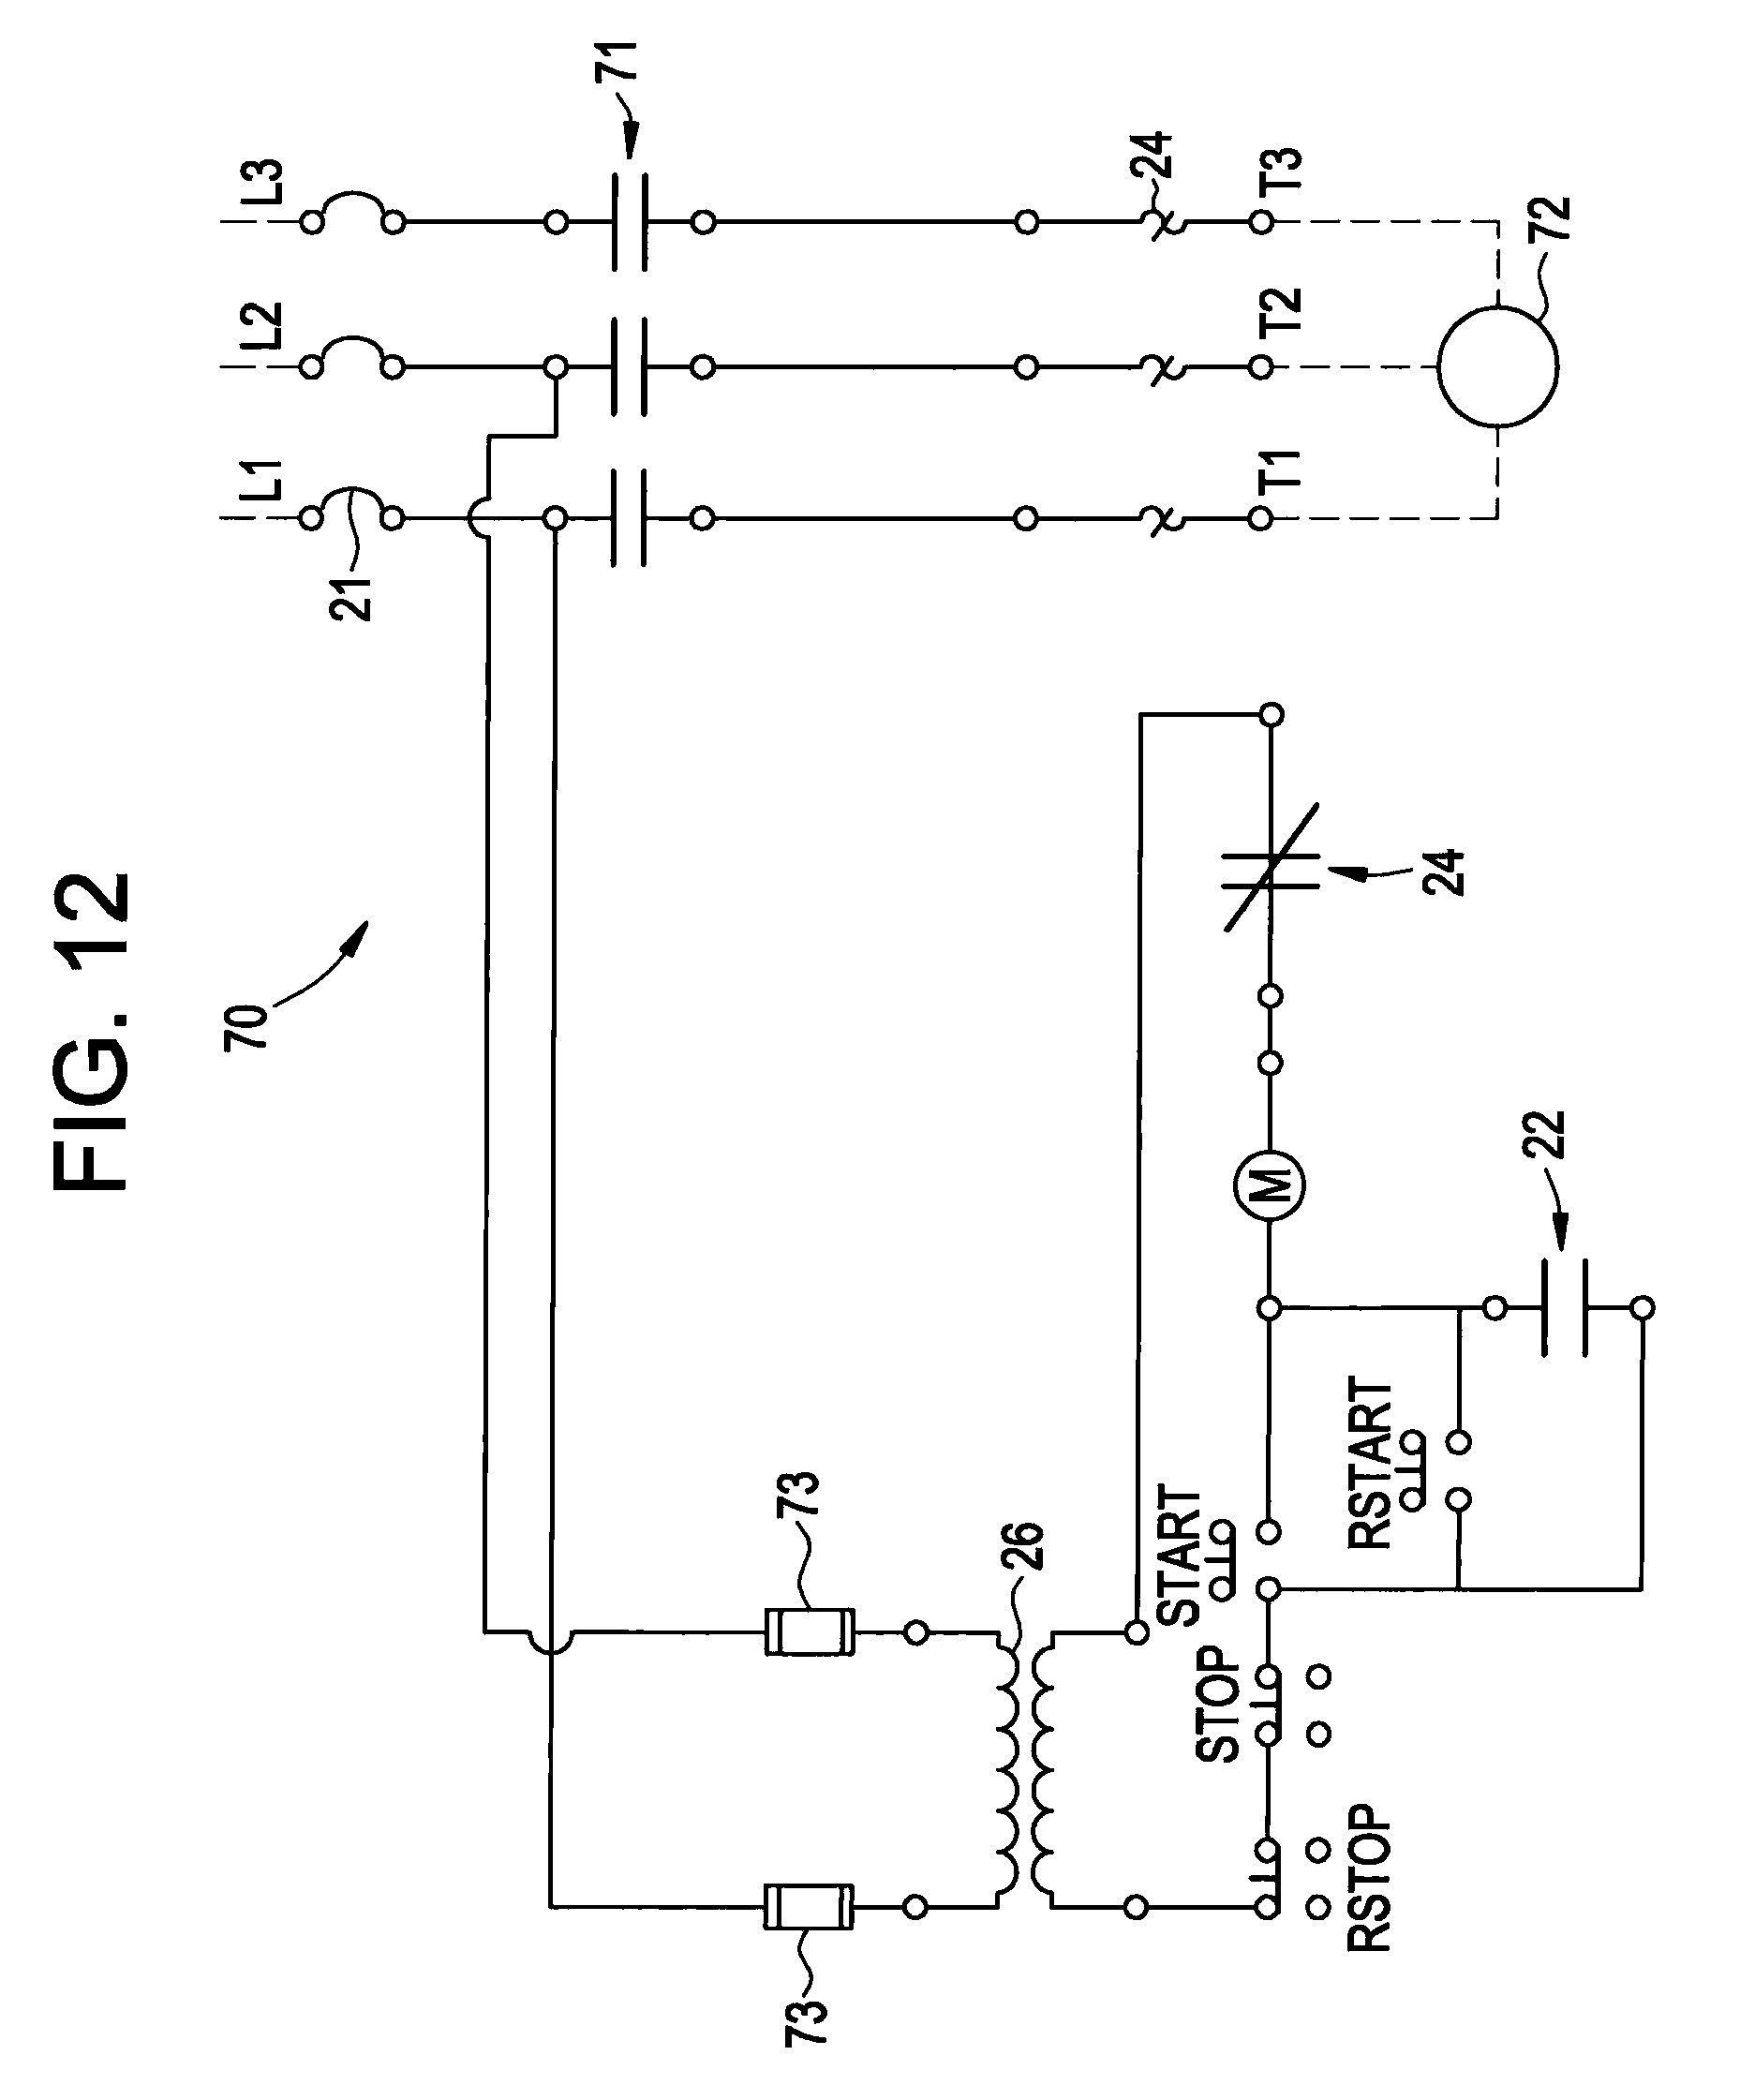 small resolution of new wiring diagram for auto transformers diagram diagramtemplate diagramsample